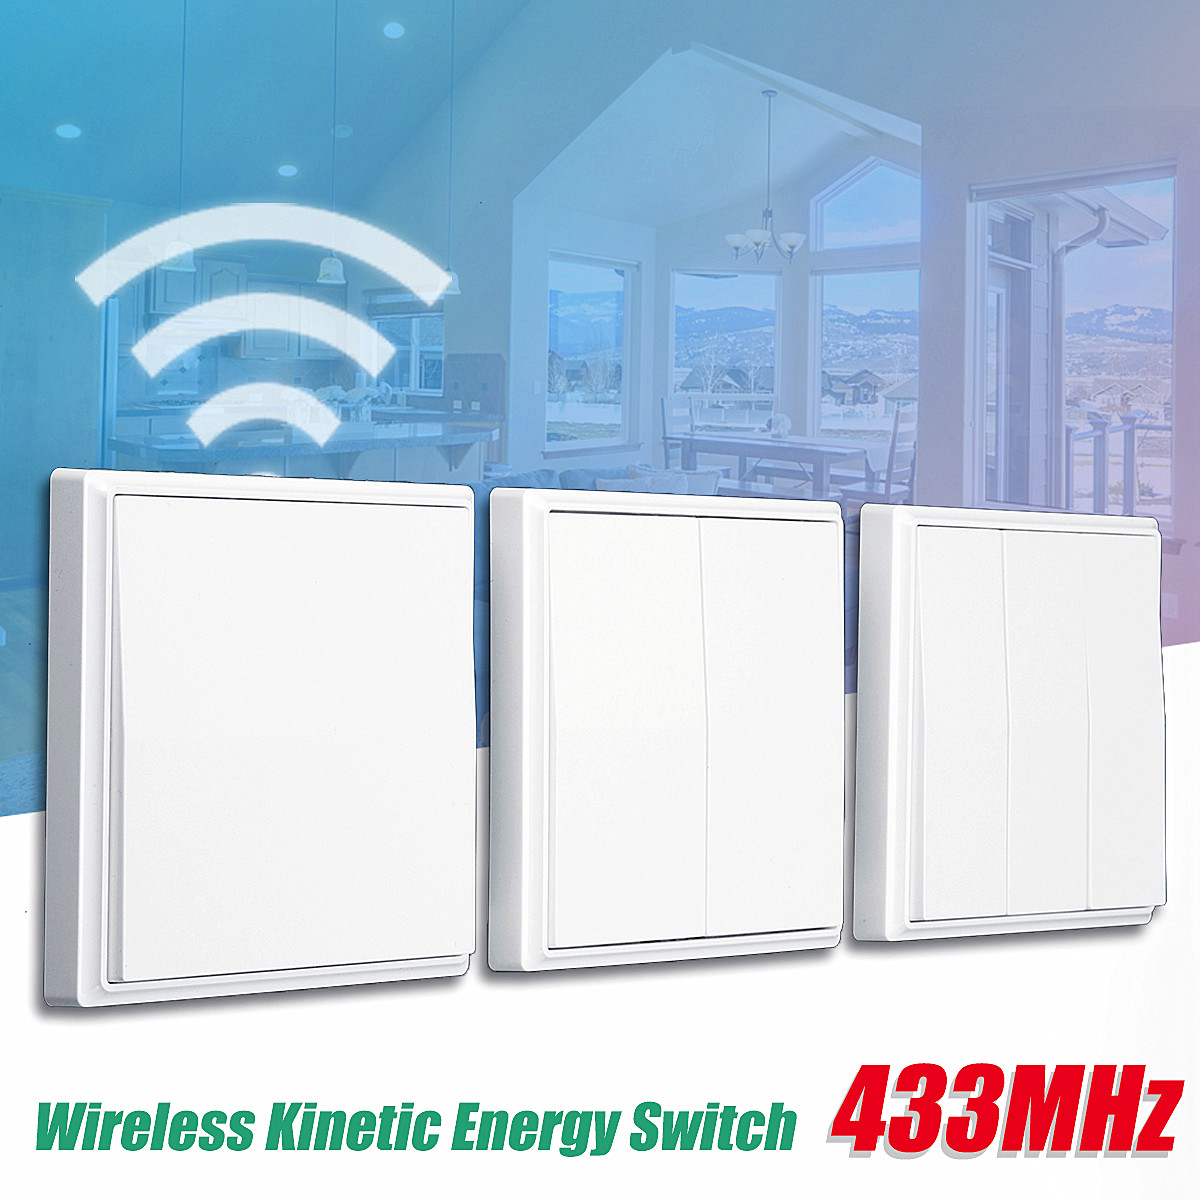 433MHz 1/2/3-Key Stairway Remote Control Switch Protocol Wireless Energy Switch Corridor Room Home Remote Lighting Remote Switch